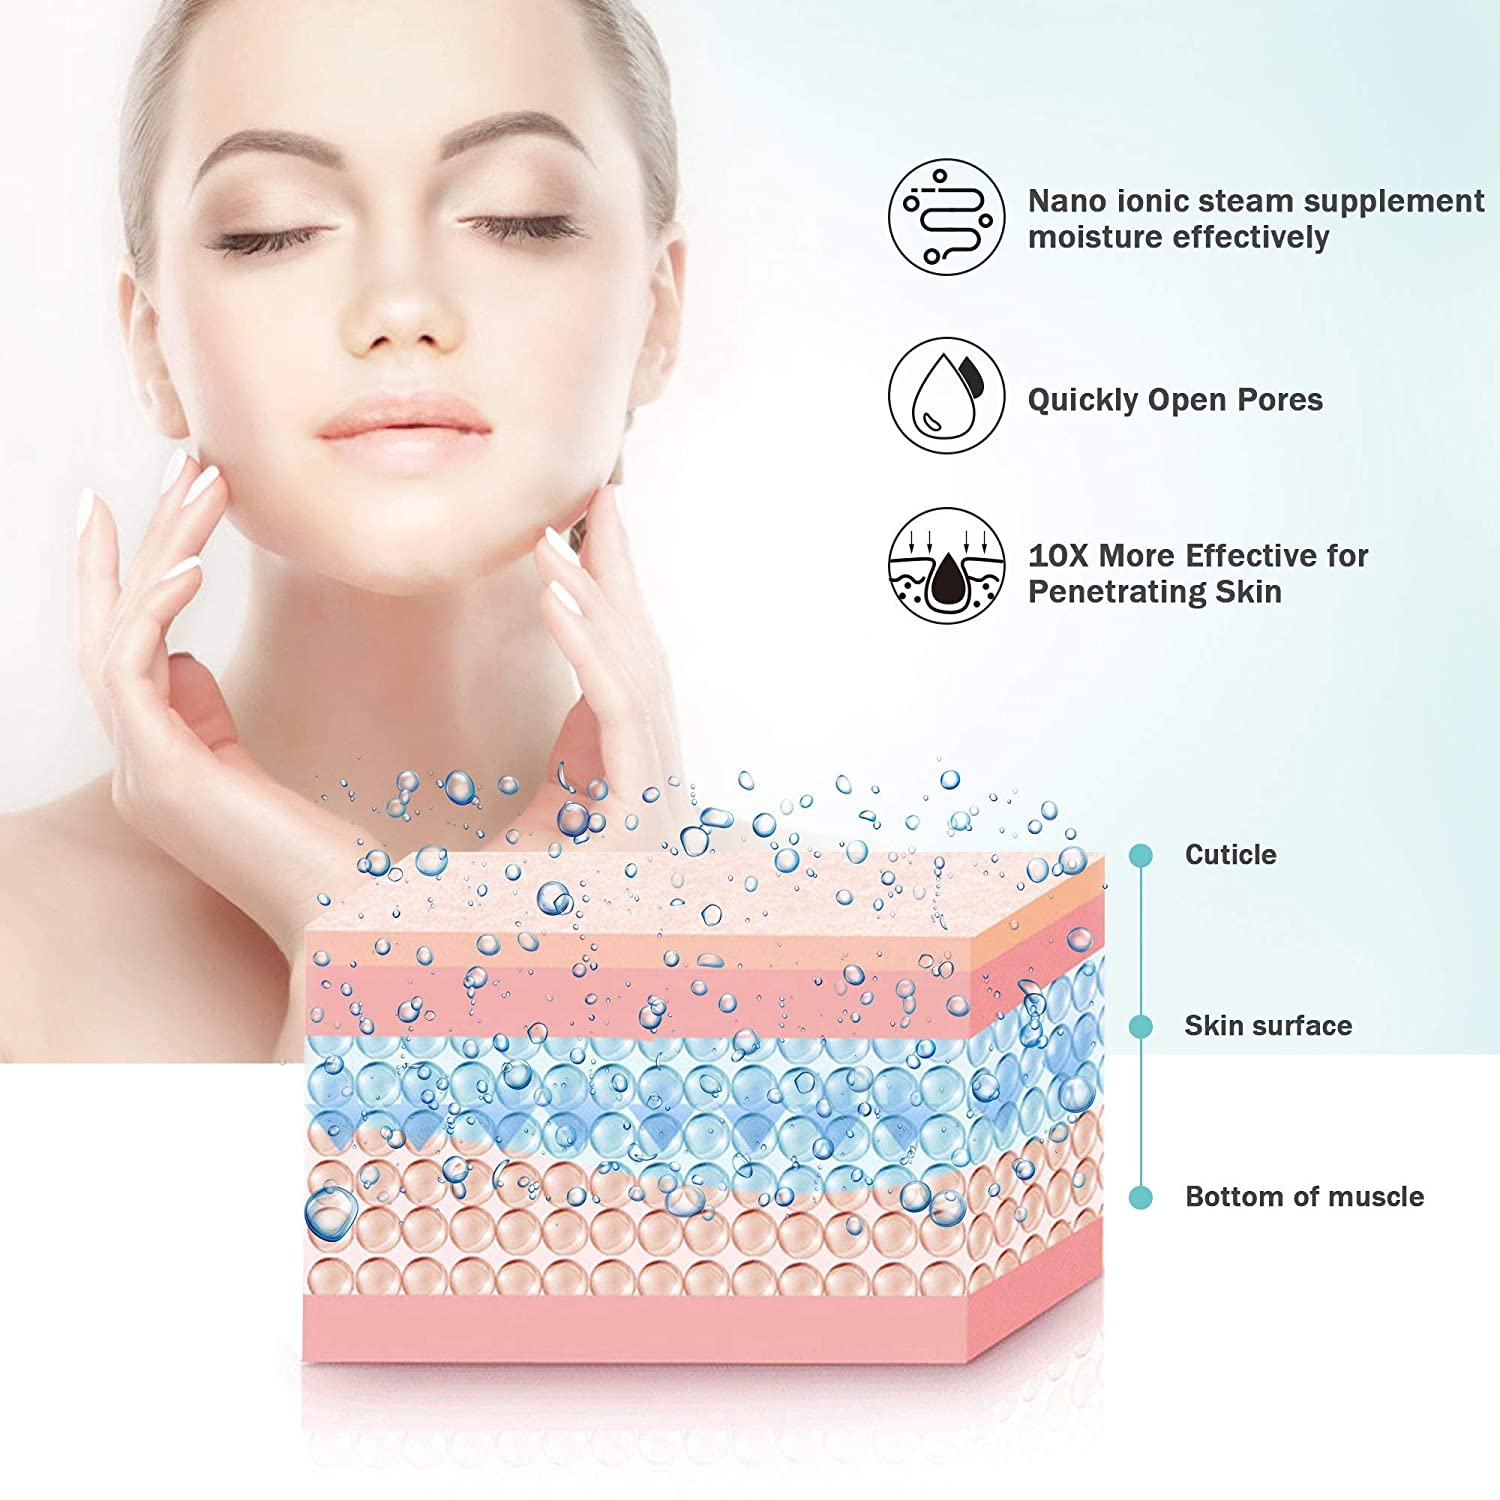 Cleansing Facial Steamer Pro